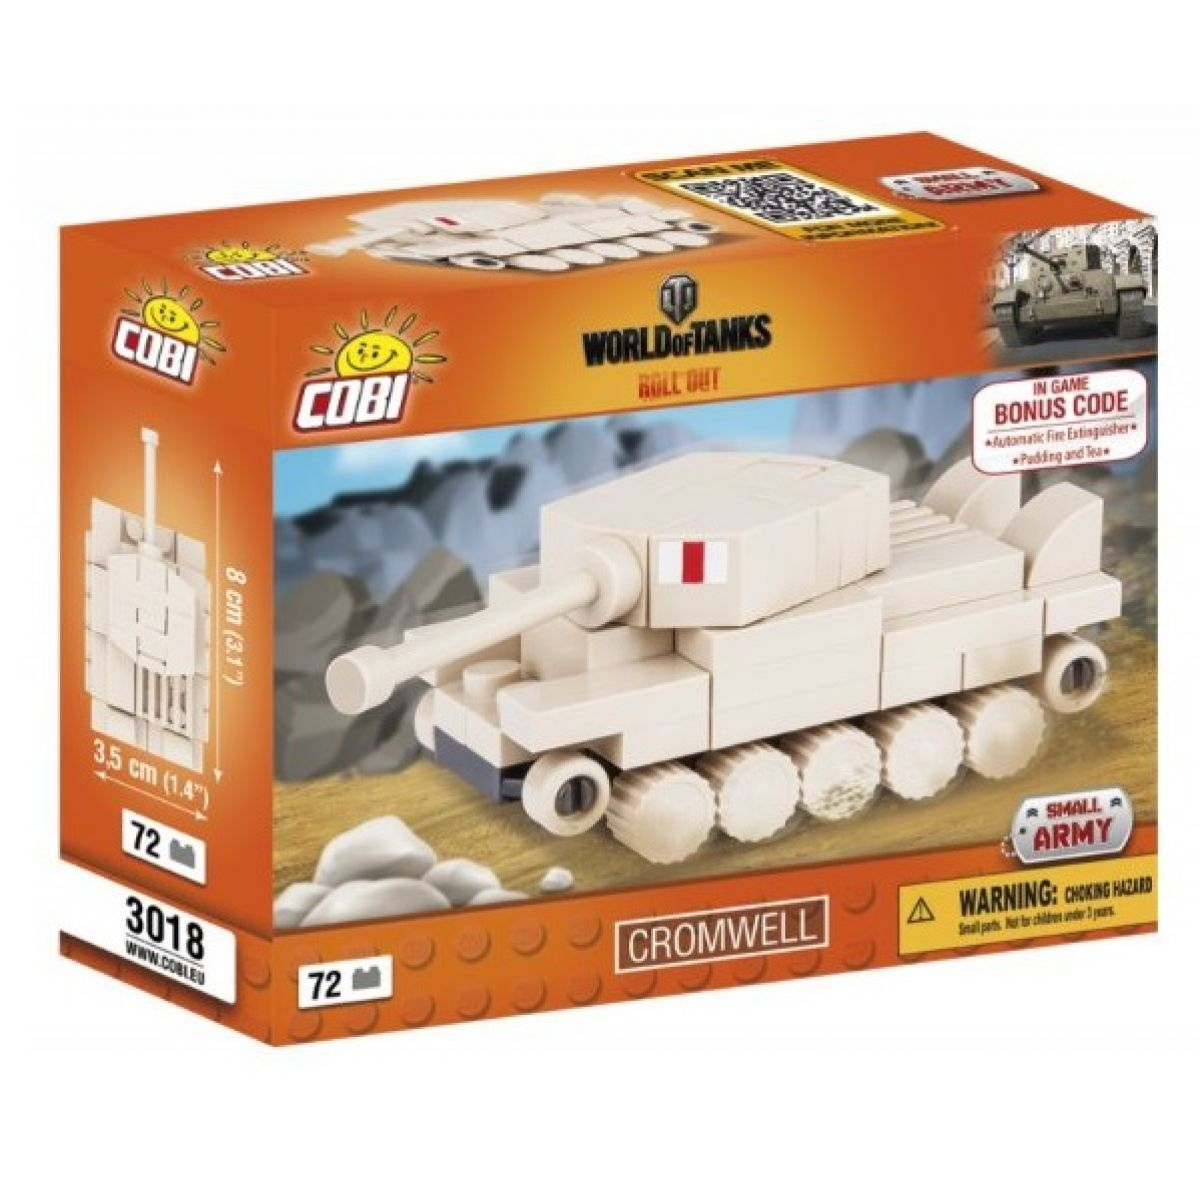 COBI 3018 WORLD of TANKS Nano Tank Cromwell 72 k